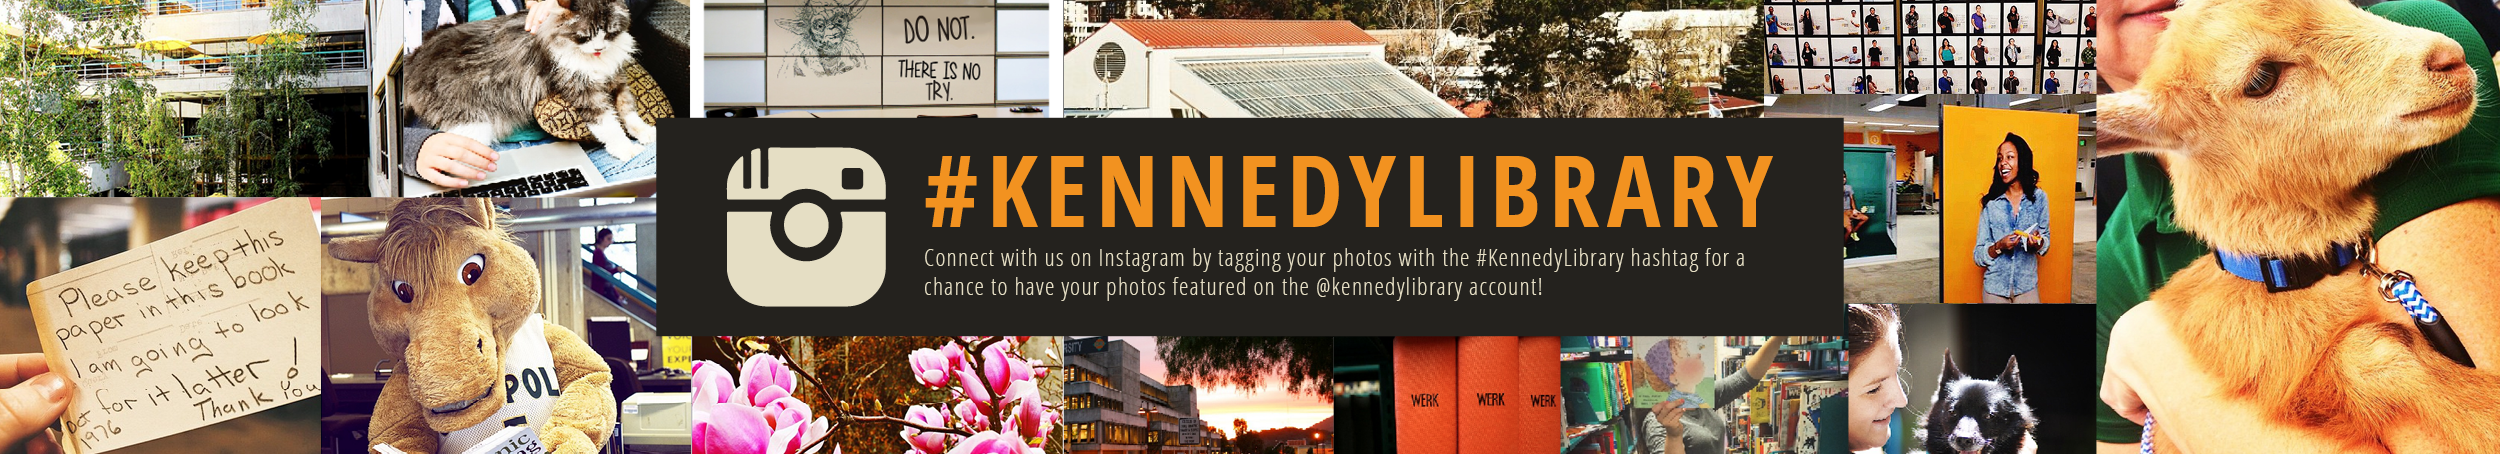 #kennedylibrary slider